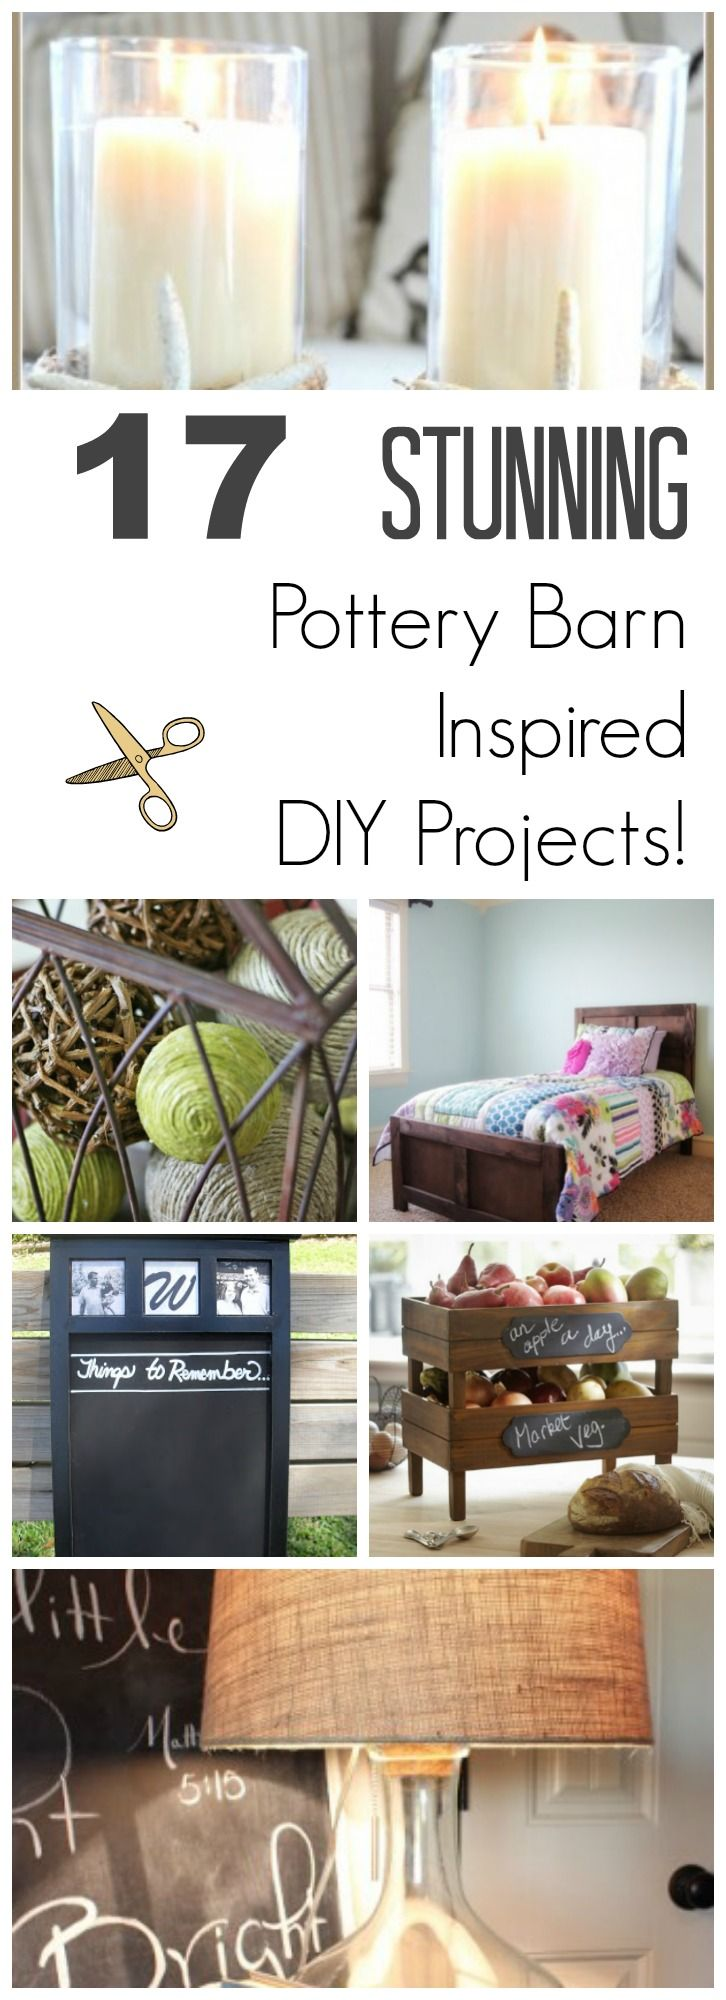 17 stunning diy pottery barn decor projects pottery barn inspiredhome decor accessoriesaccessories